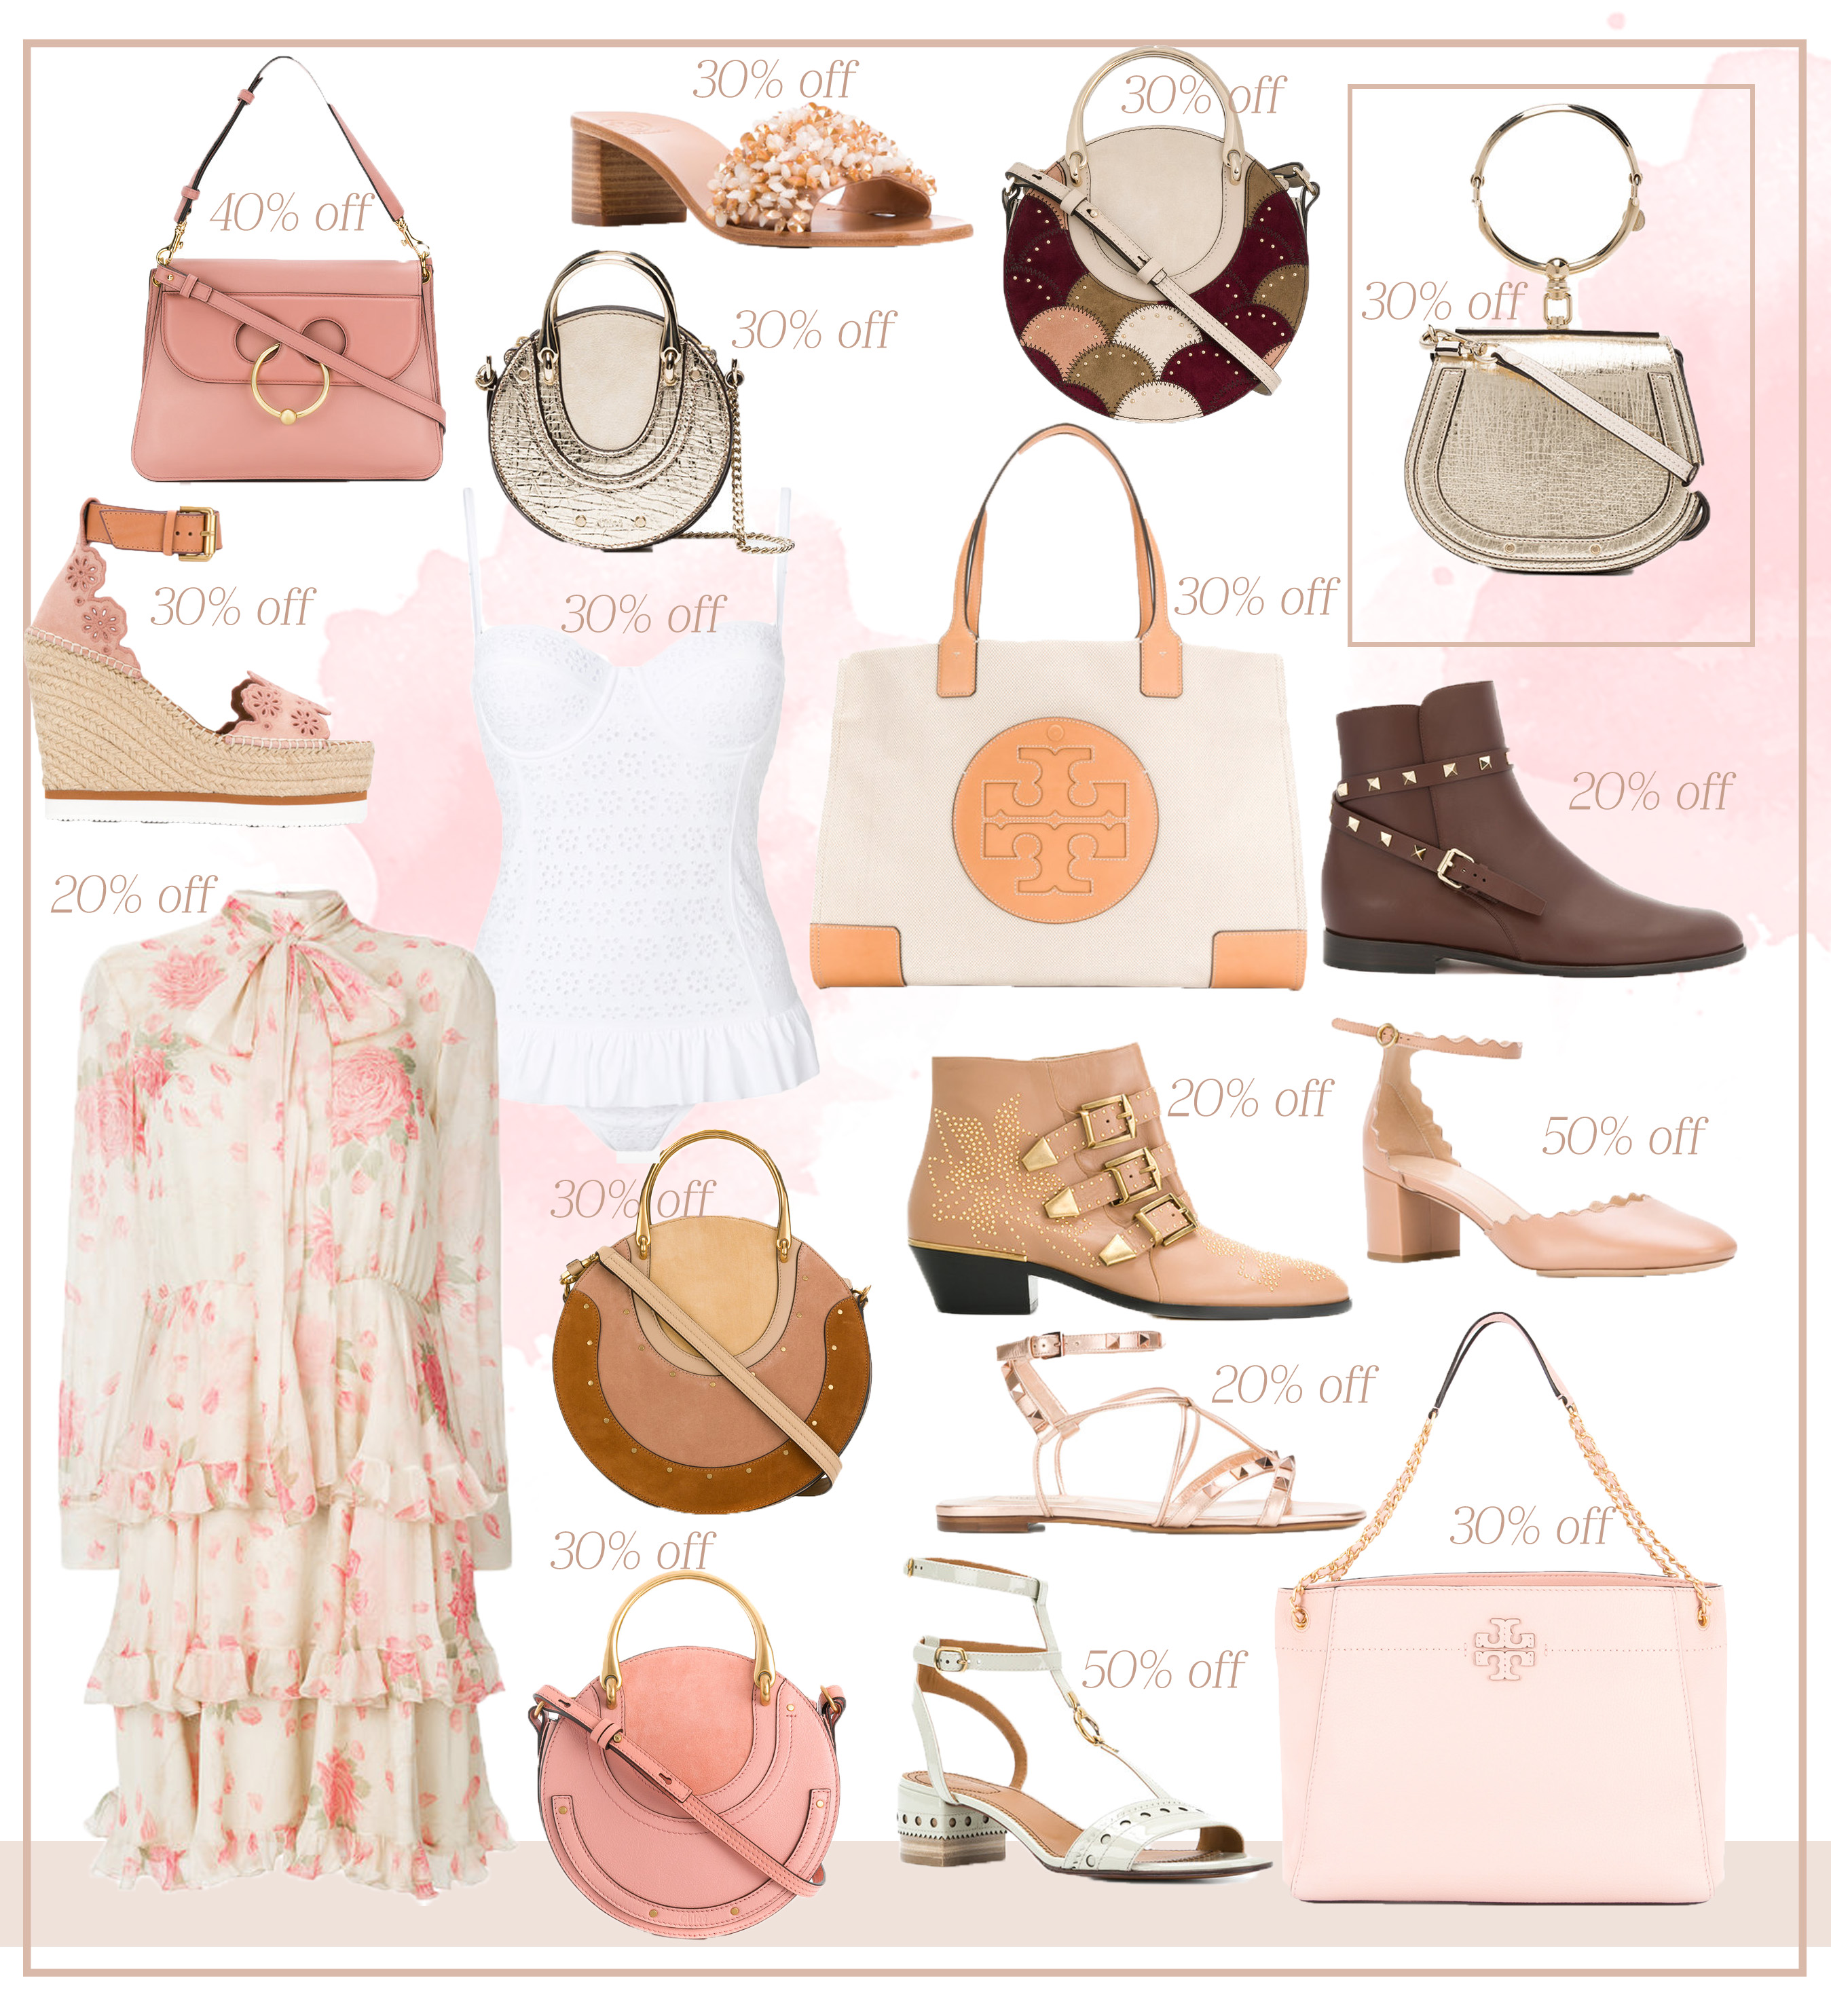 95421b407b08 J.W Anderson pierce bag // Tory Burch sandals // Chloé Pixie bag in  patchwork // Chloé Pixie bag in metallic // Chloé Nile bag // See by Chloé  wedges ...